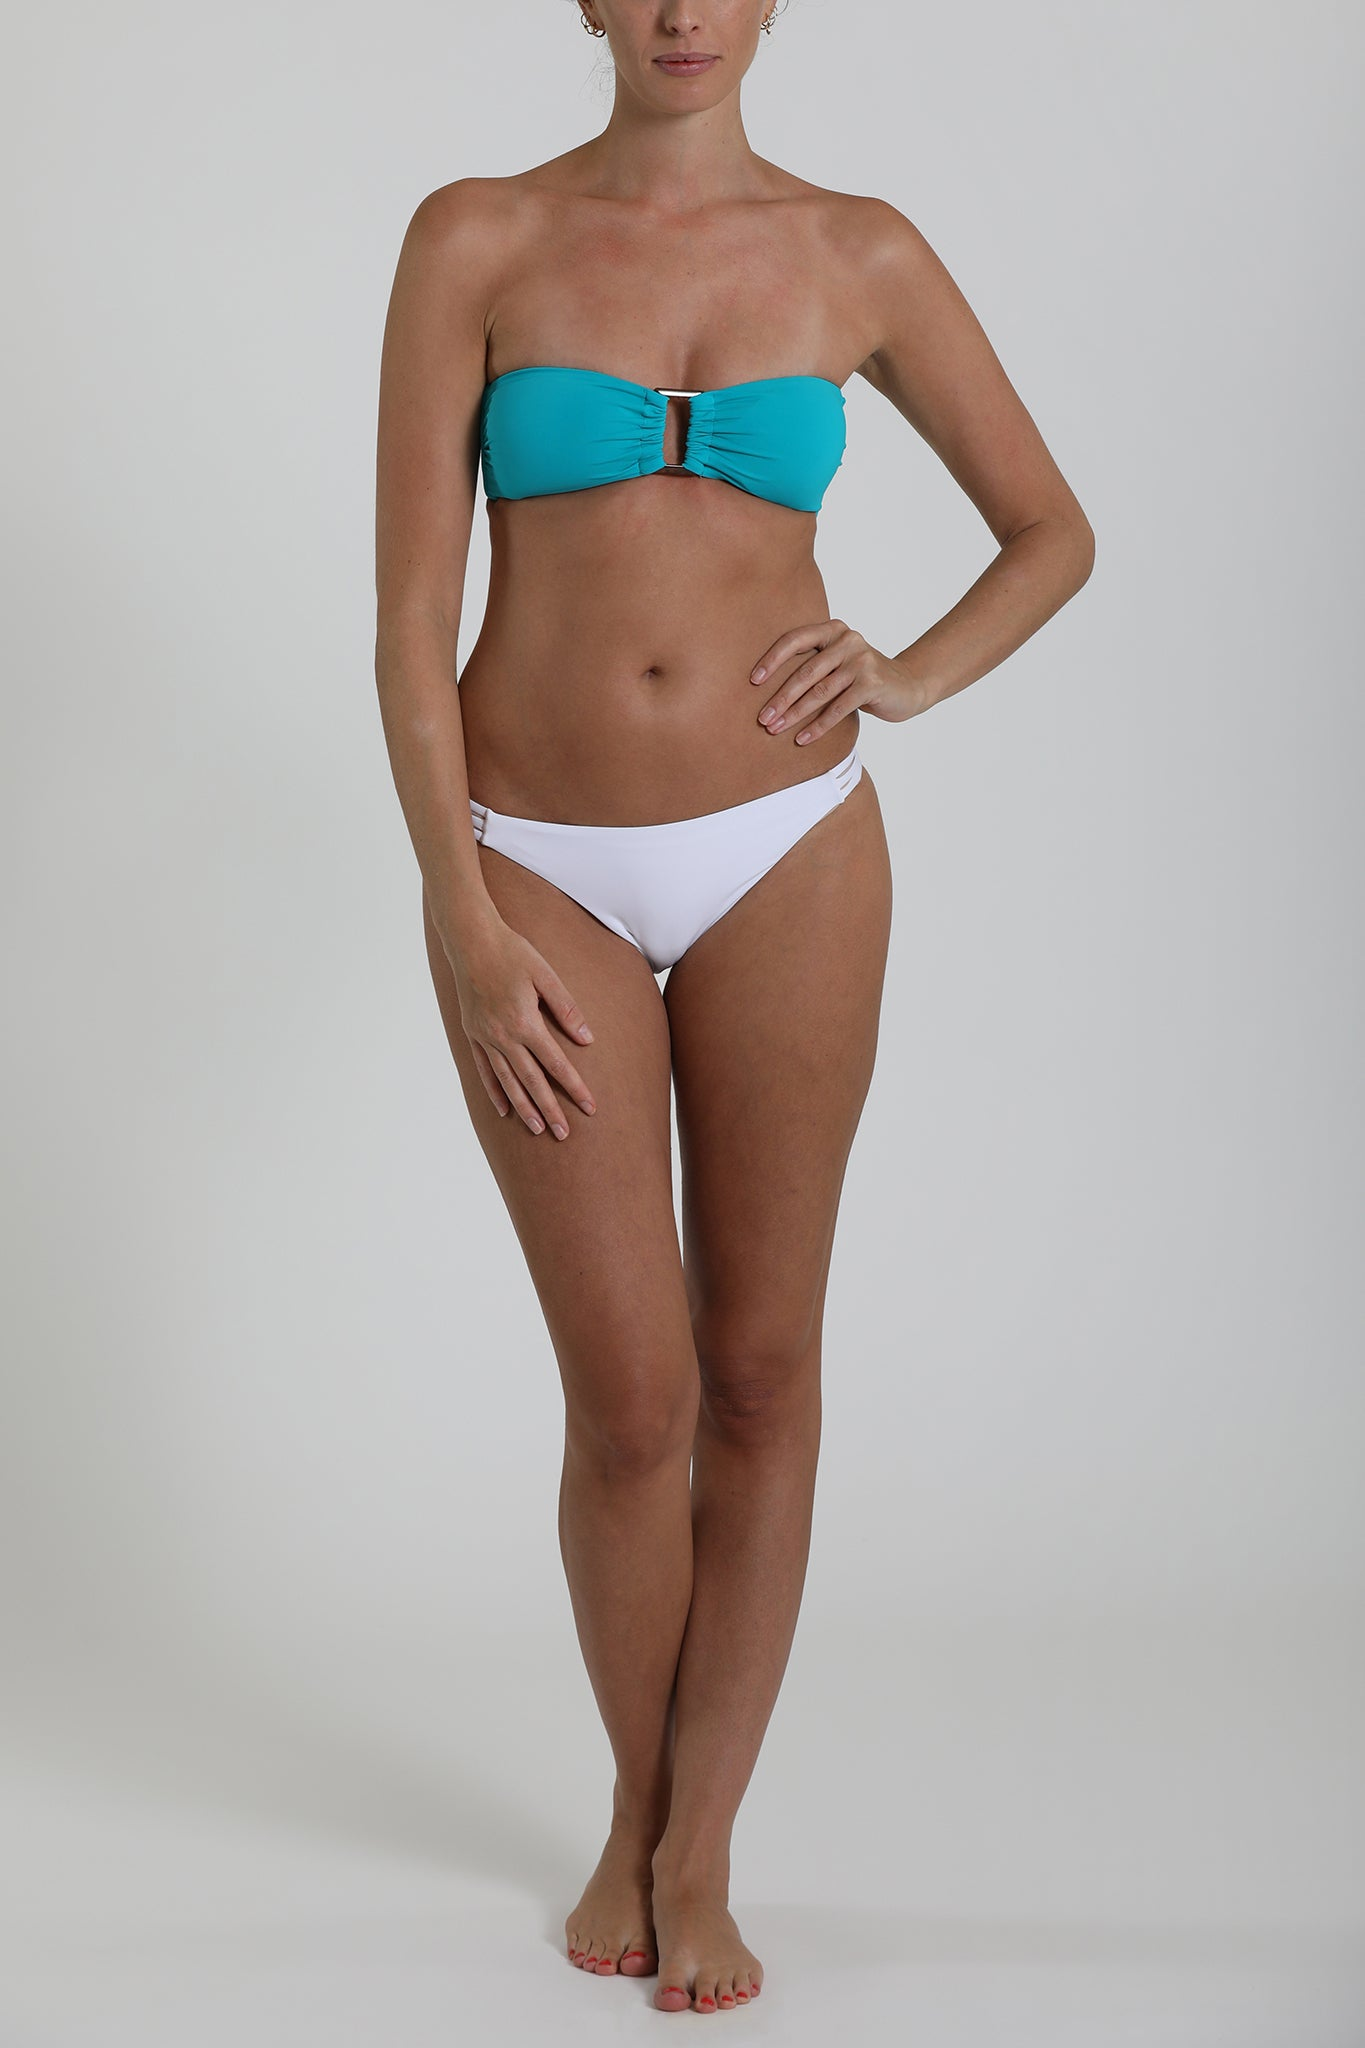 S6 Tobago Bandeau Top - turquoise & Tuscany 3-string bottom - pure white swimwear bikini set